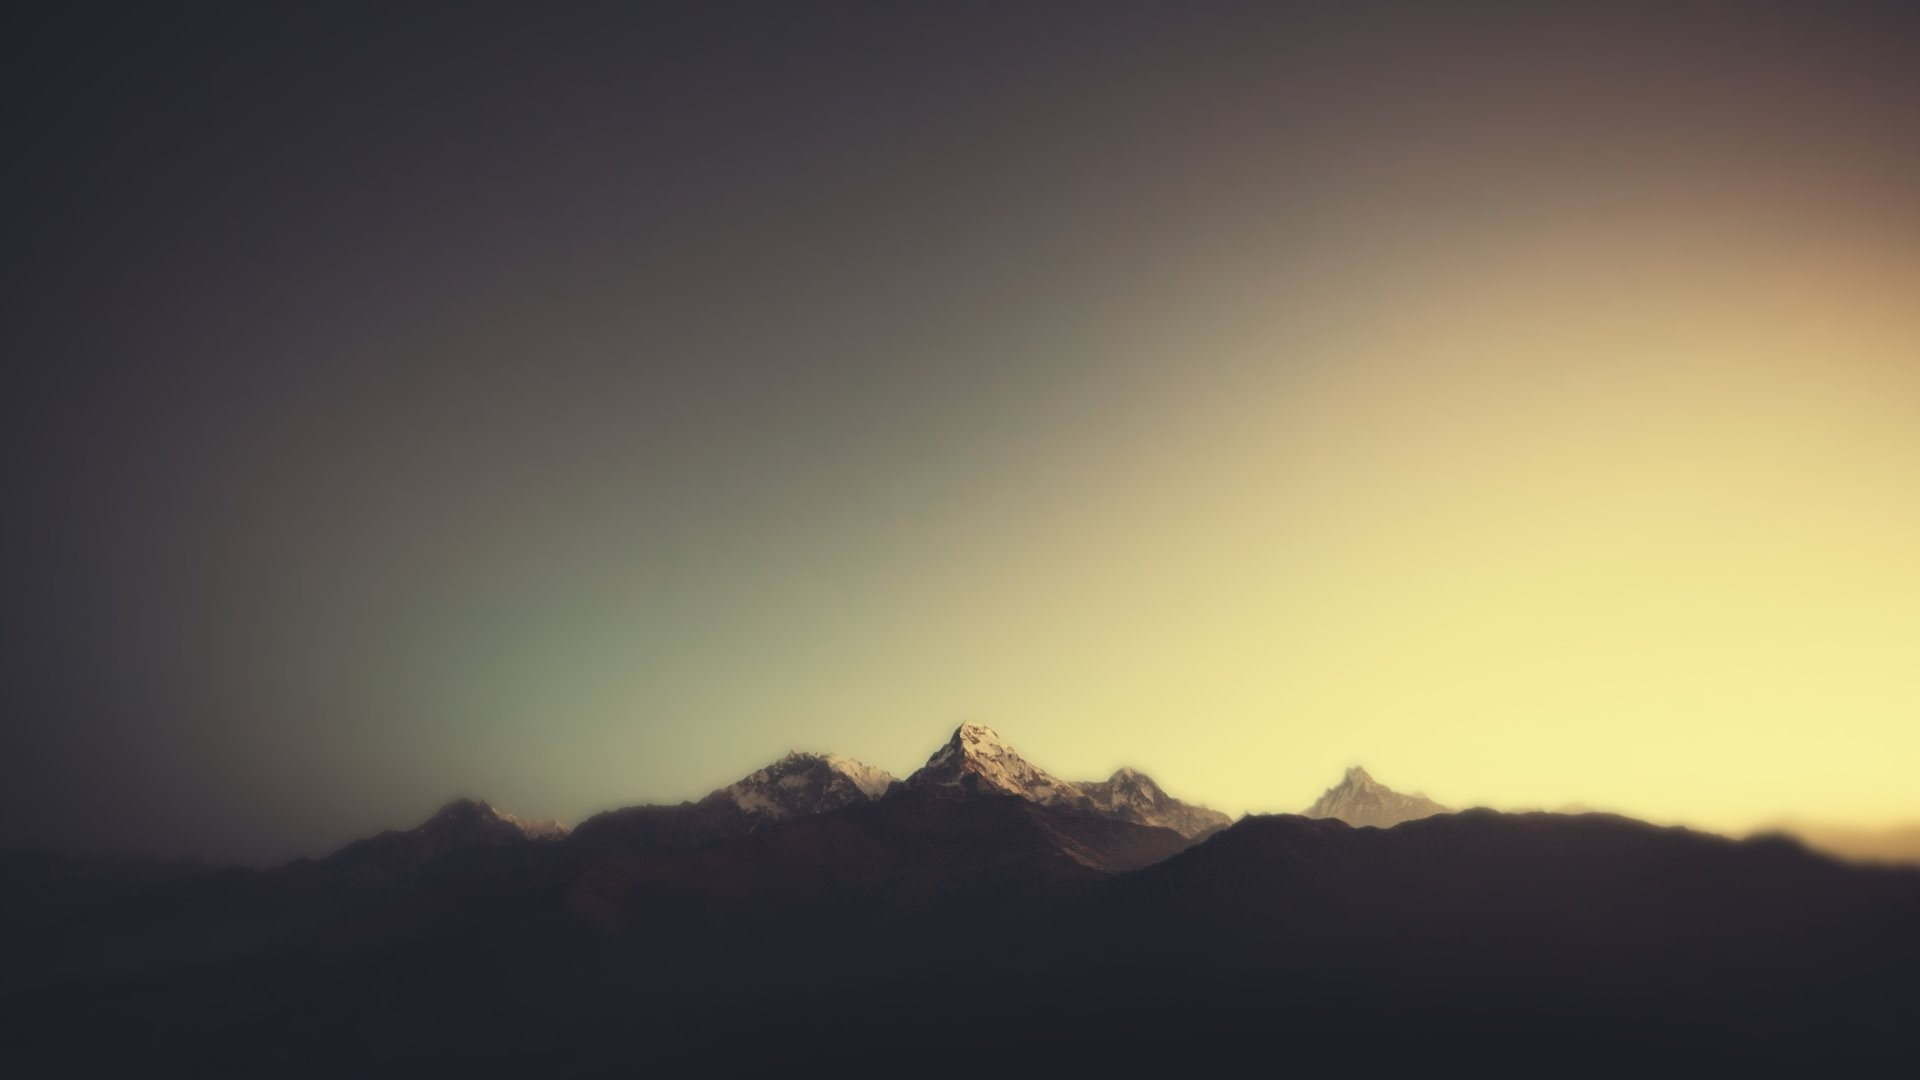 <b>Wallpapers</b> of the week: mountains